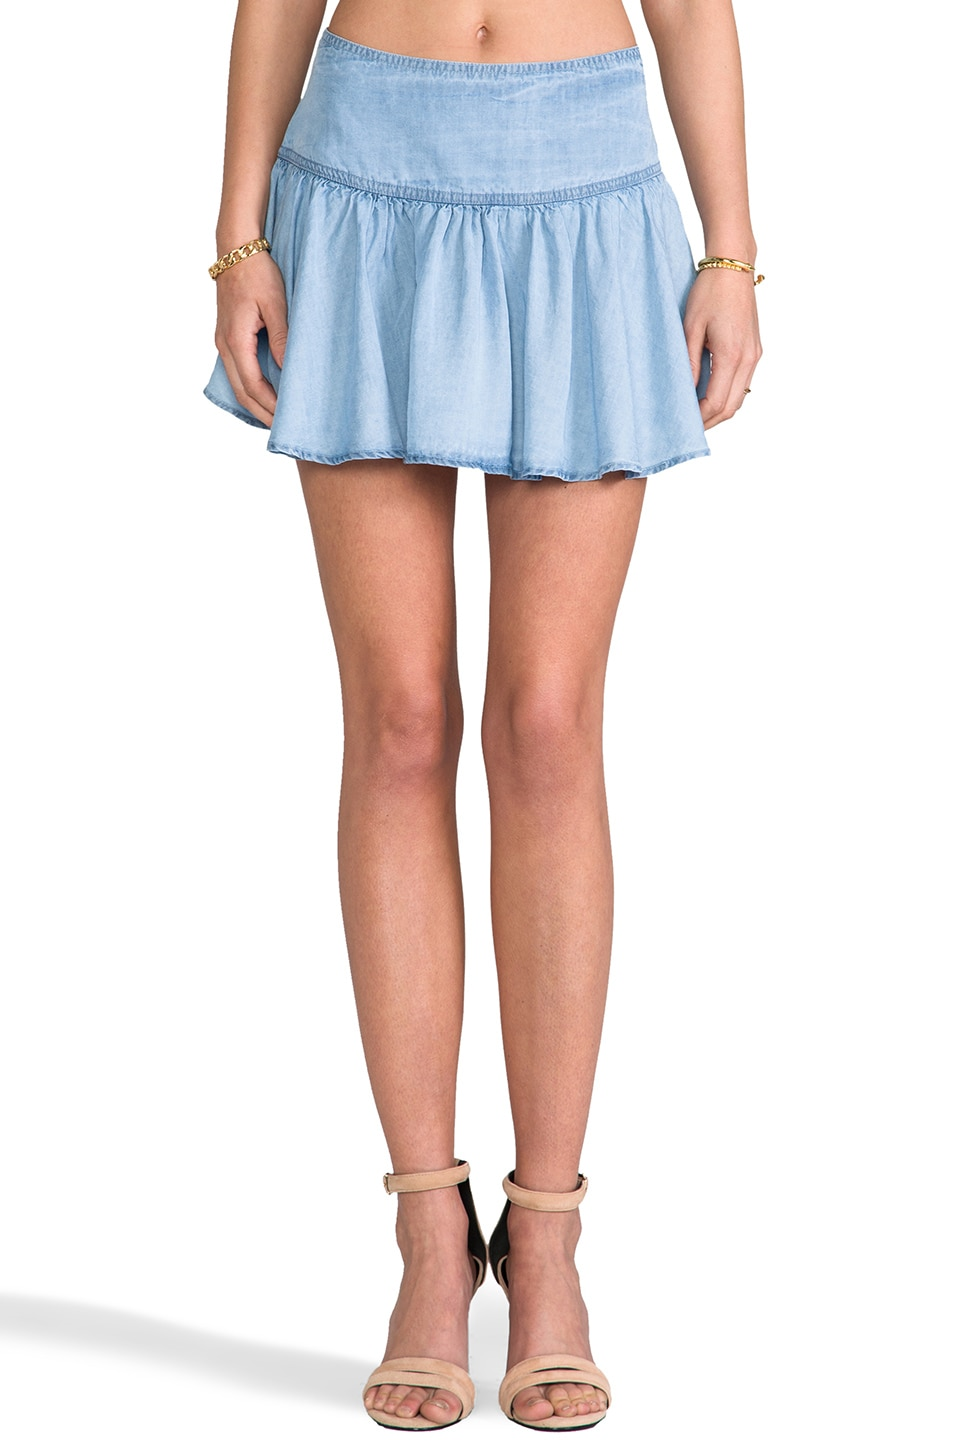 SAM&LAVI Lydia Skirt in Chambray